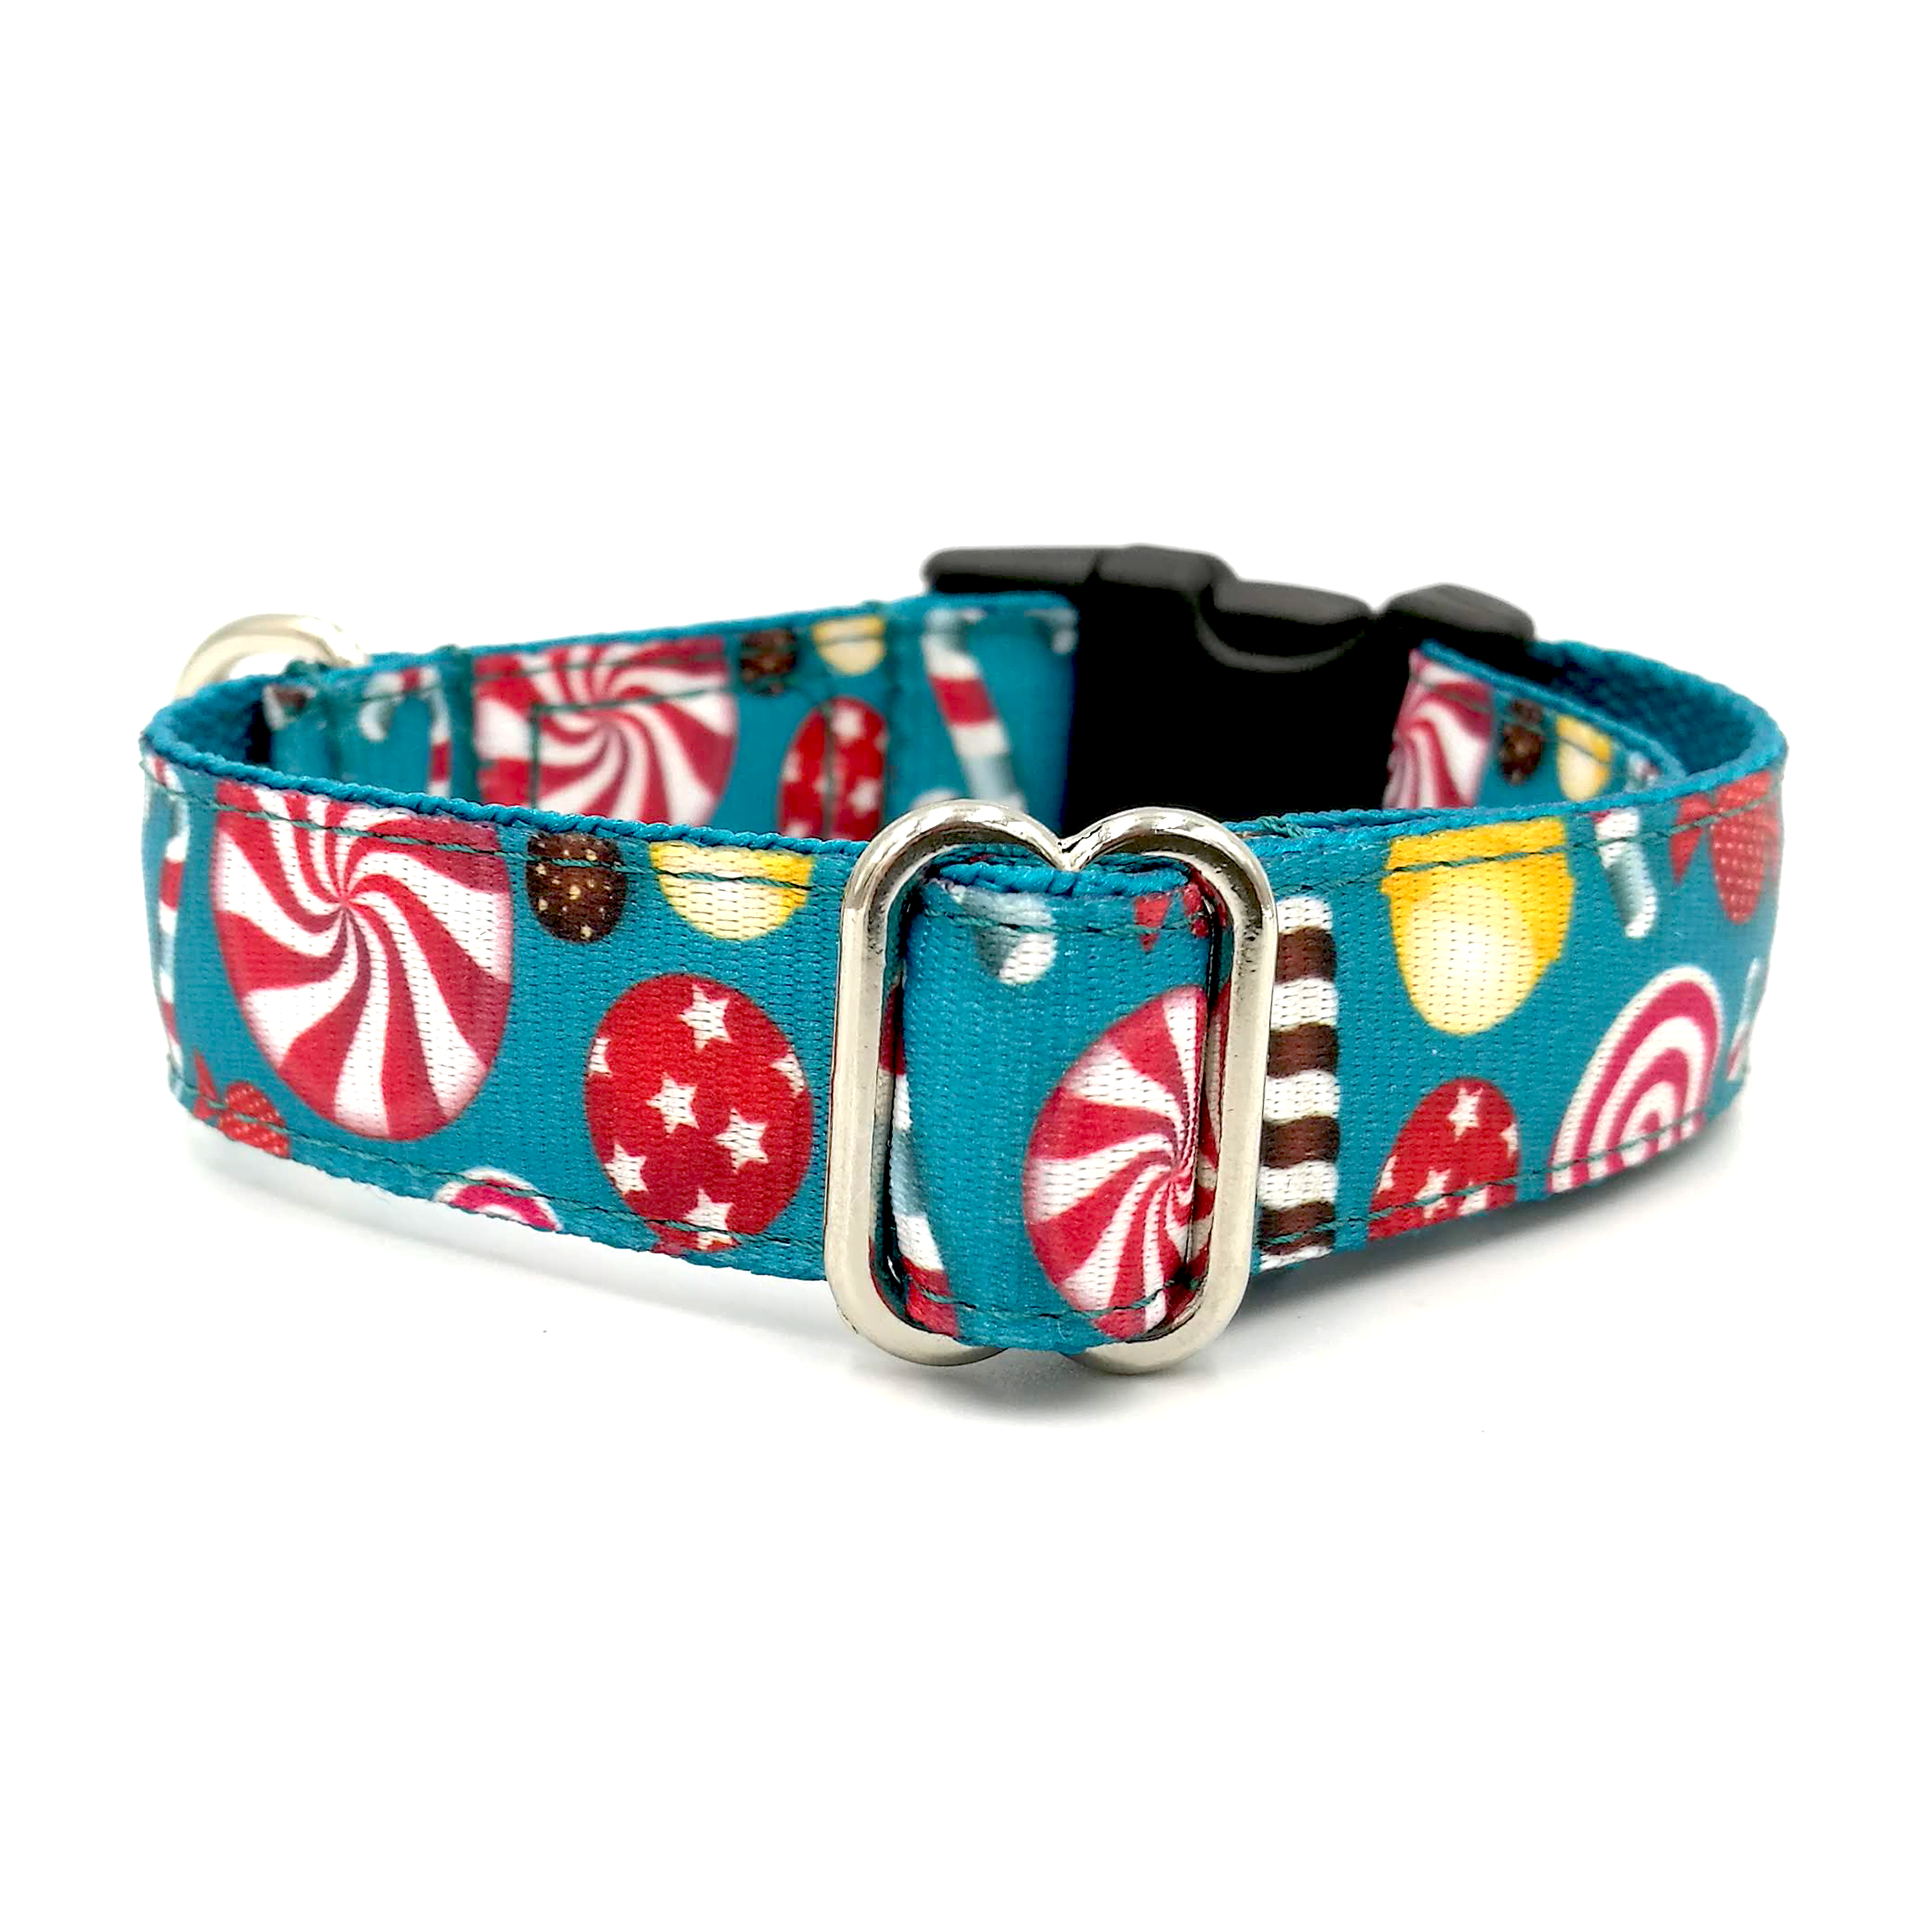 Sweet dog collar